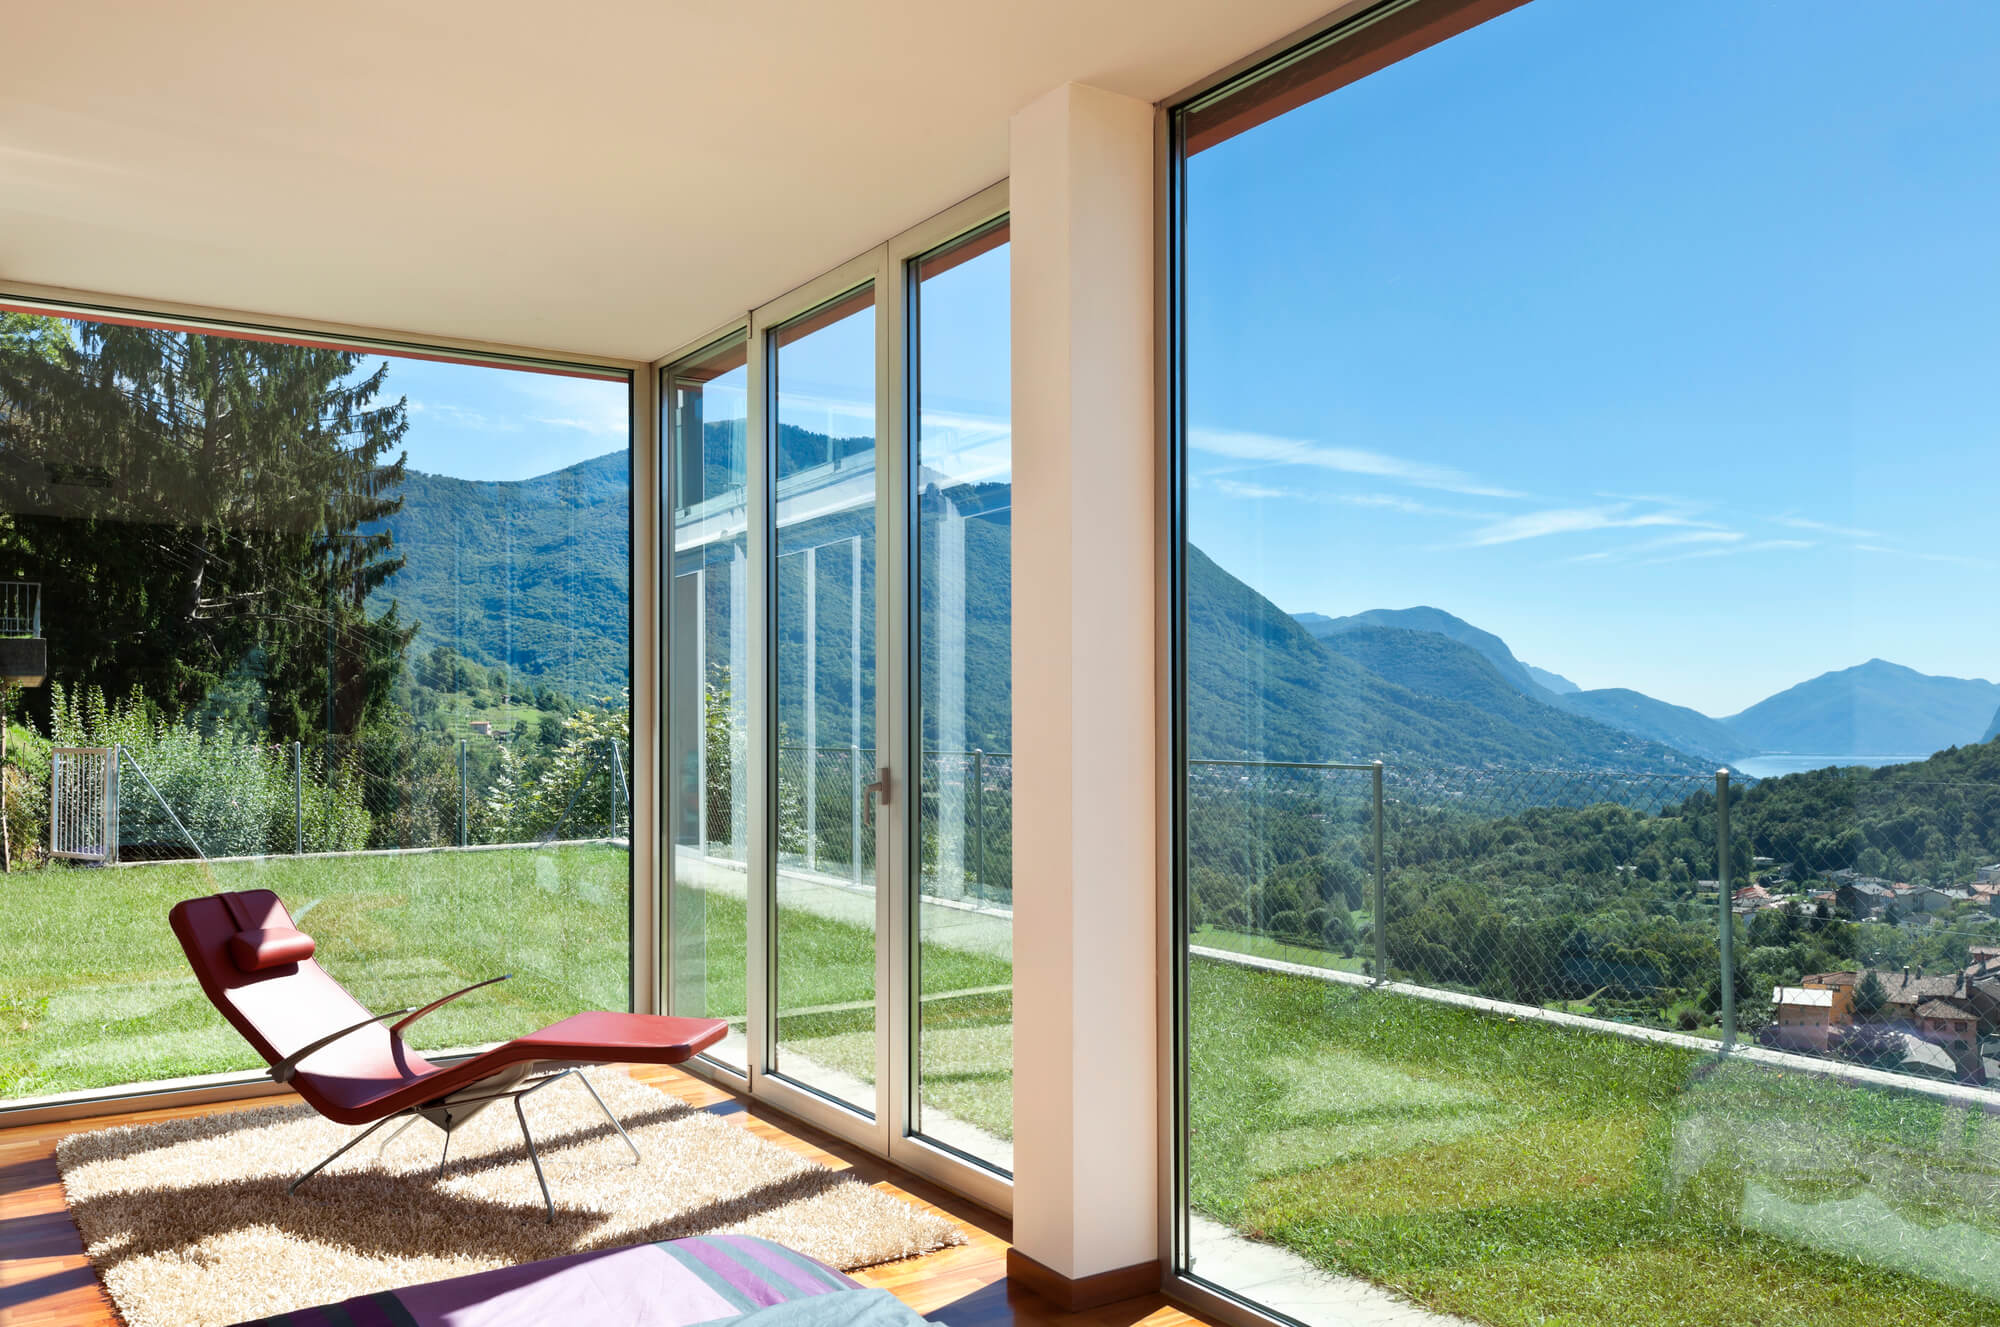 great view with impact windows and doors from good financing